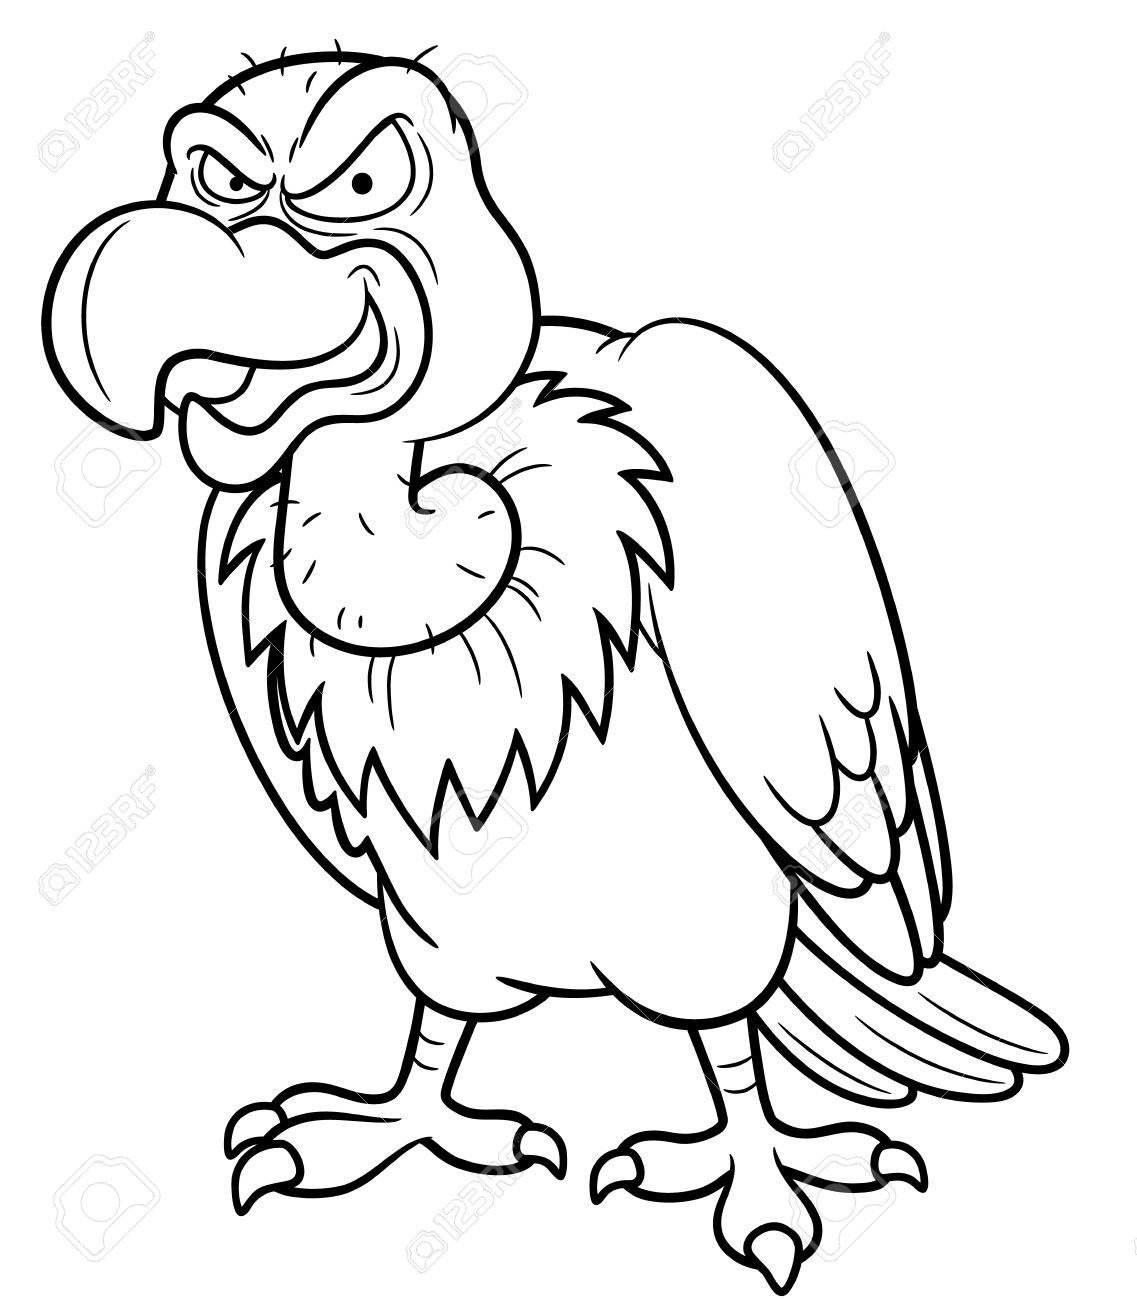 vulture coloring pages happy vulture coloring pages download free happy vulture coloring vulture pages